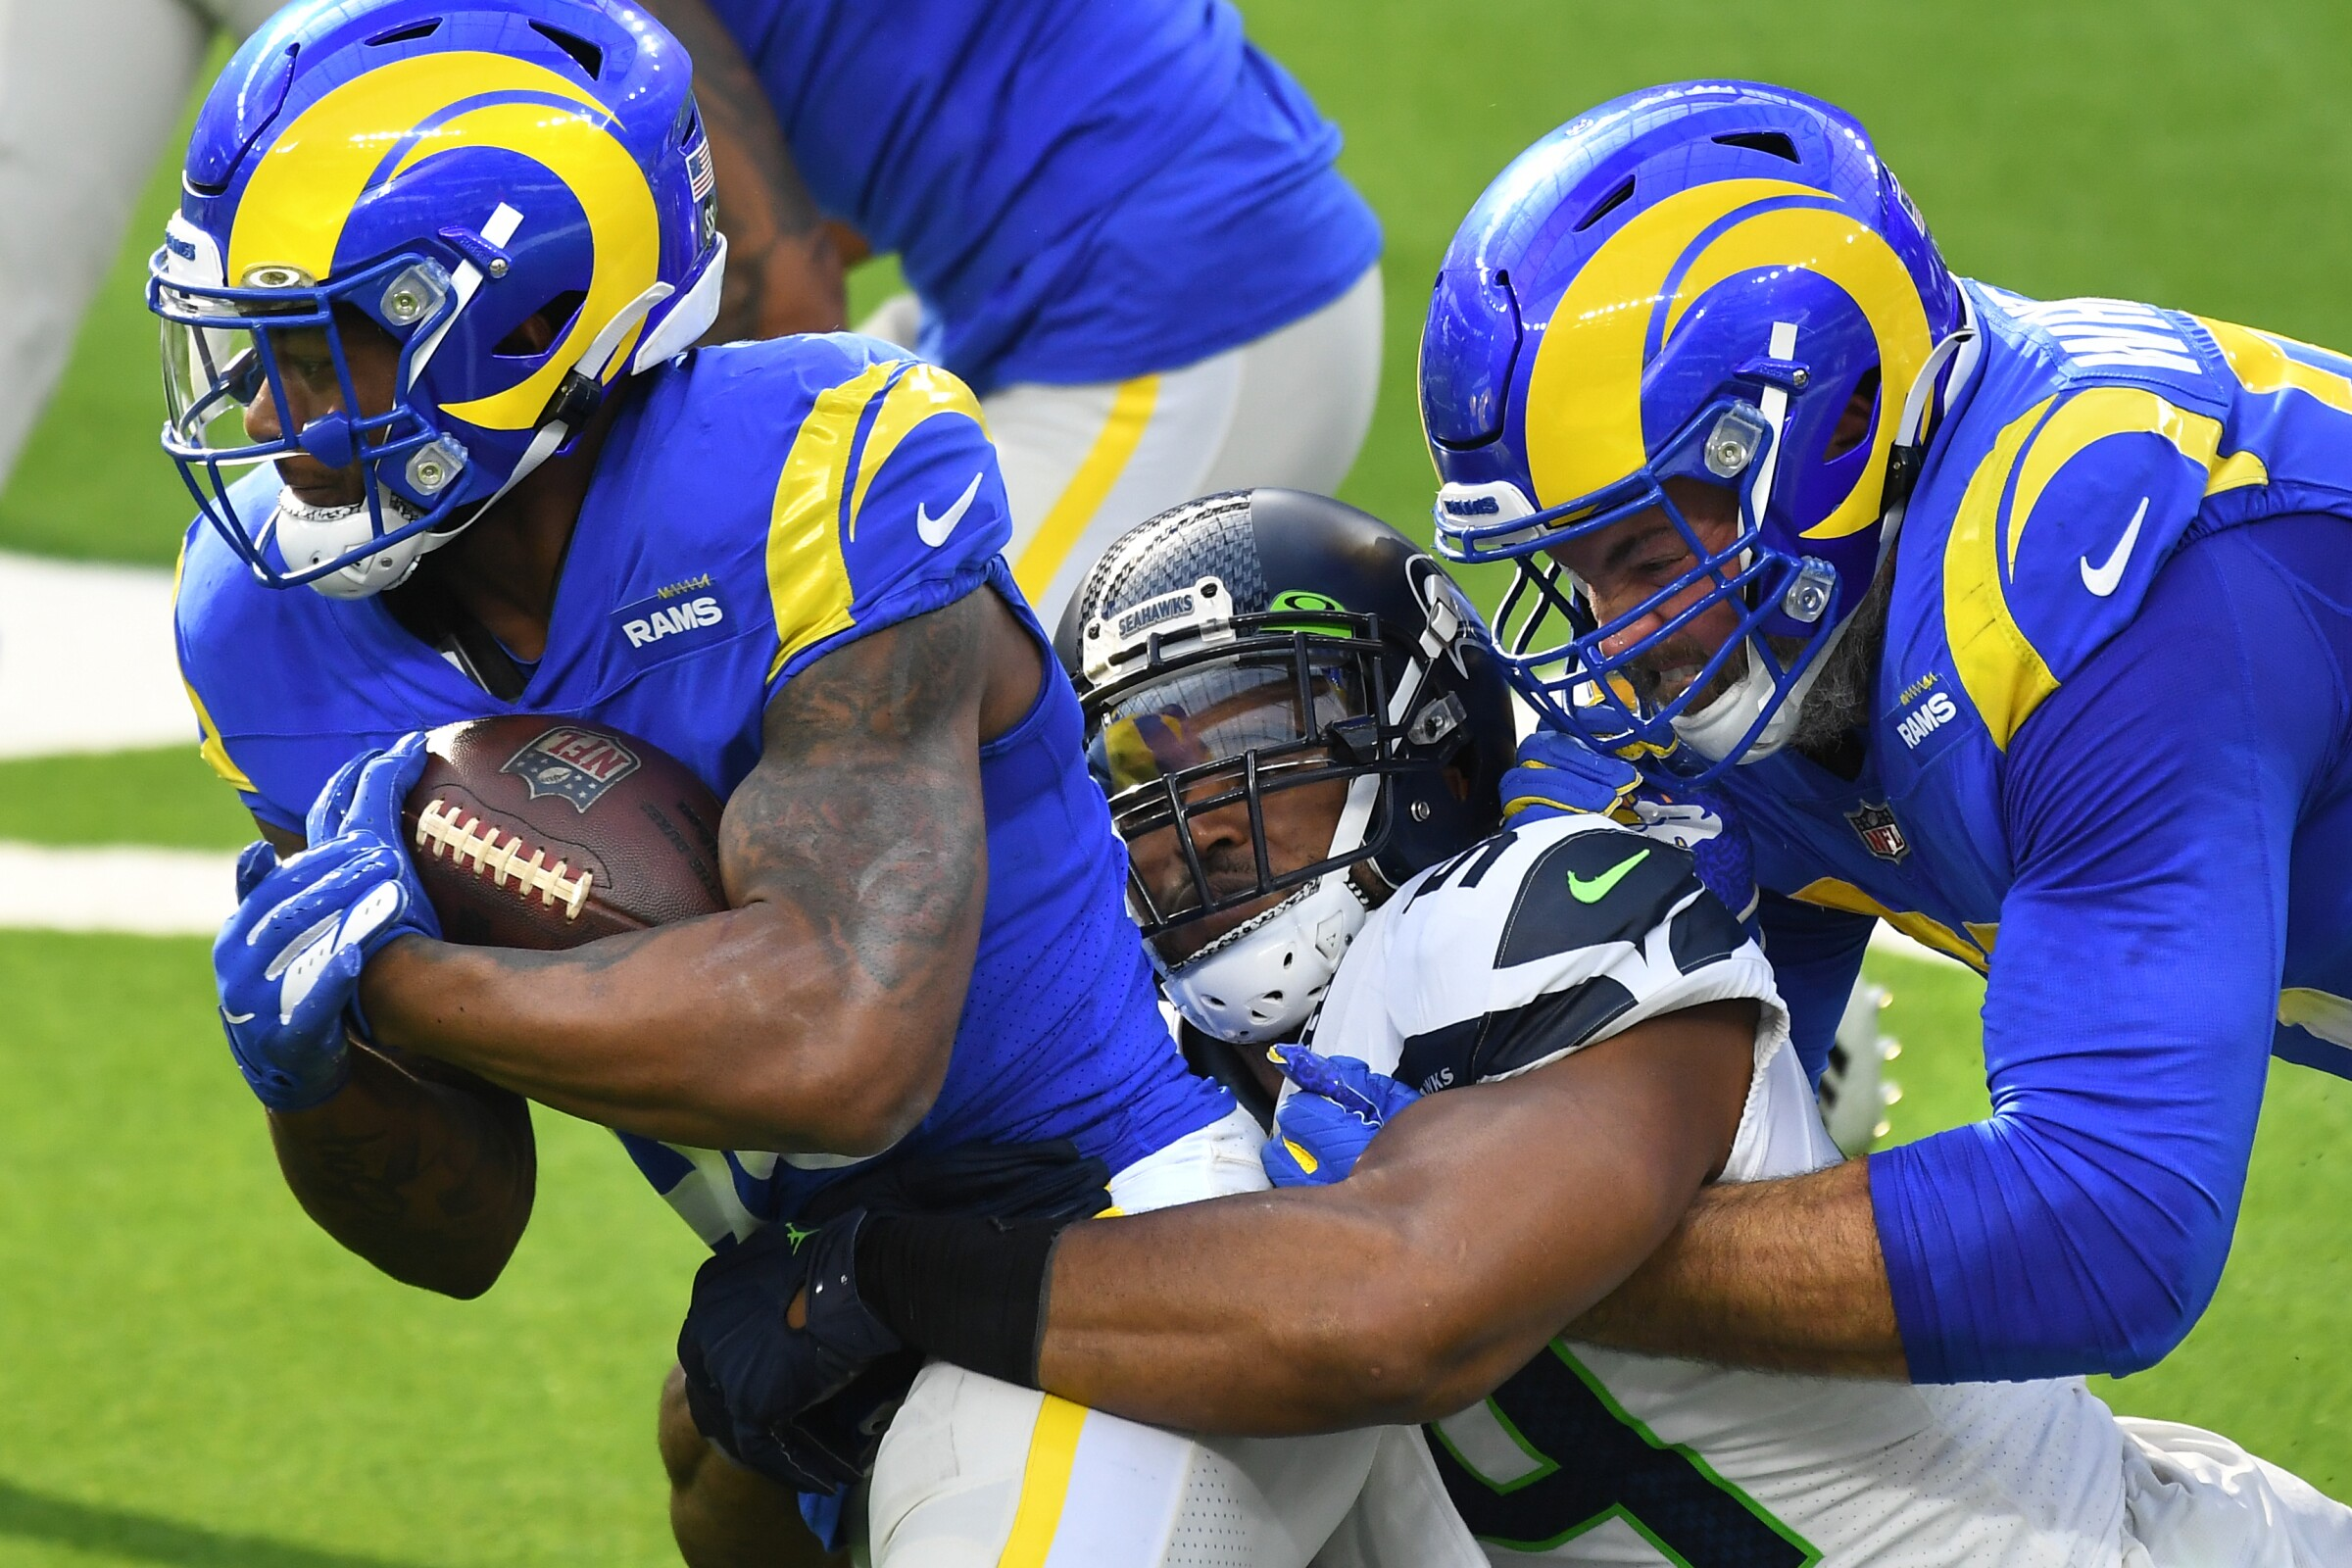 Rams running back Cam Akers gets a little help from offensive lineman Andrew Whitworth to pick up yards.